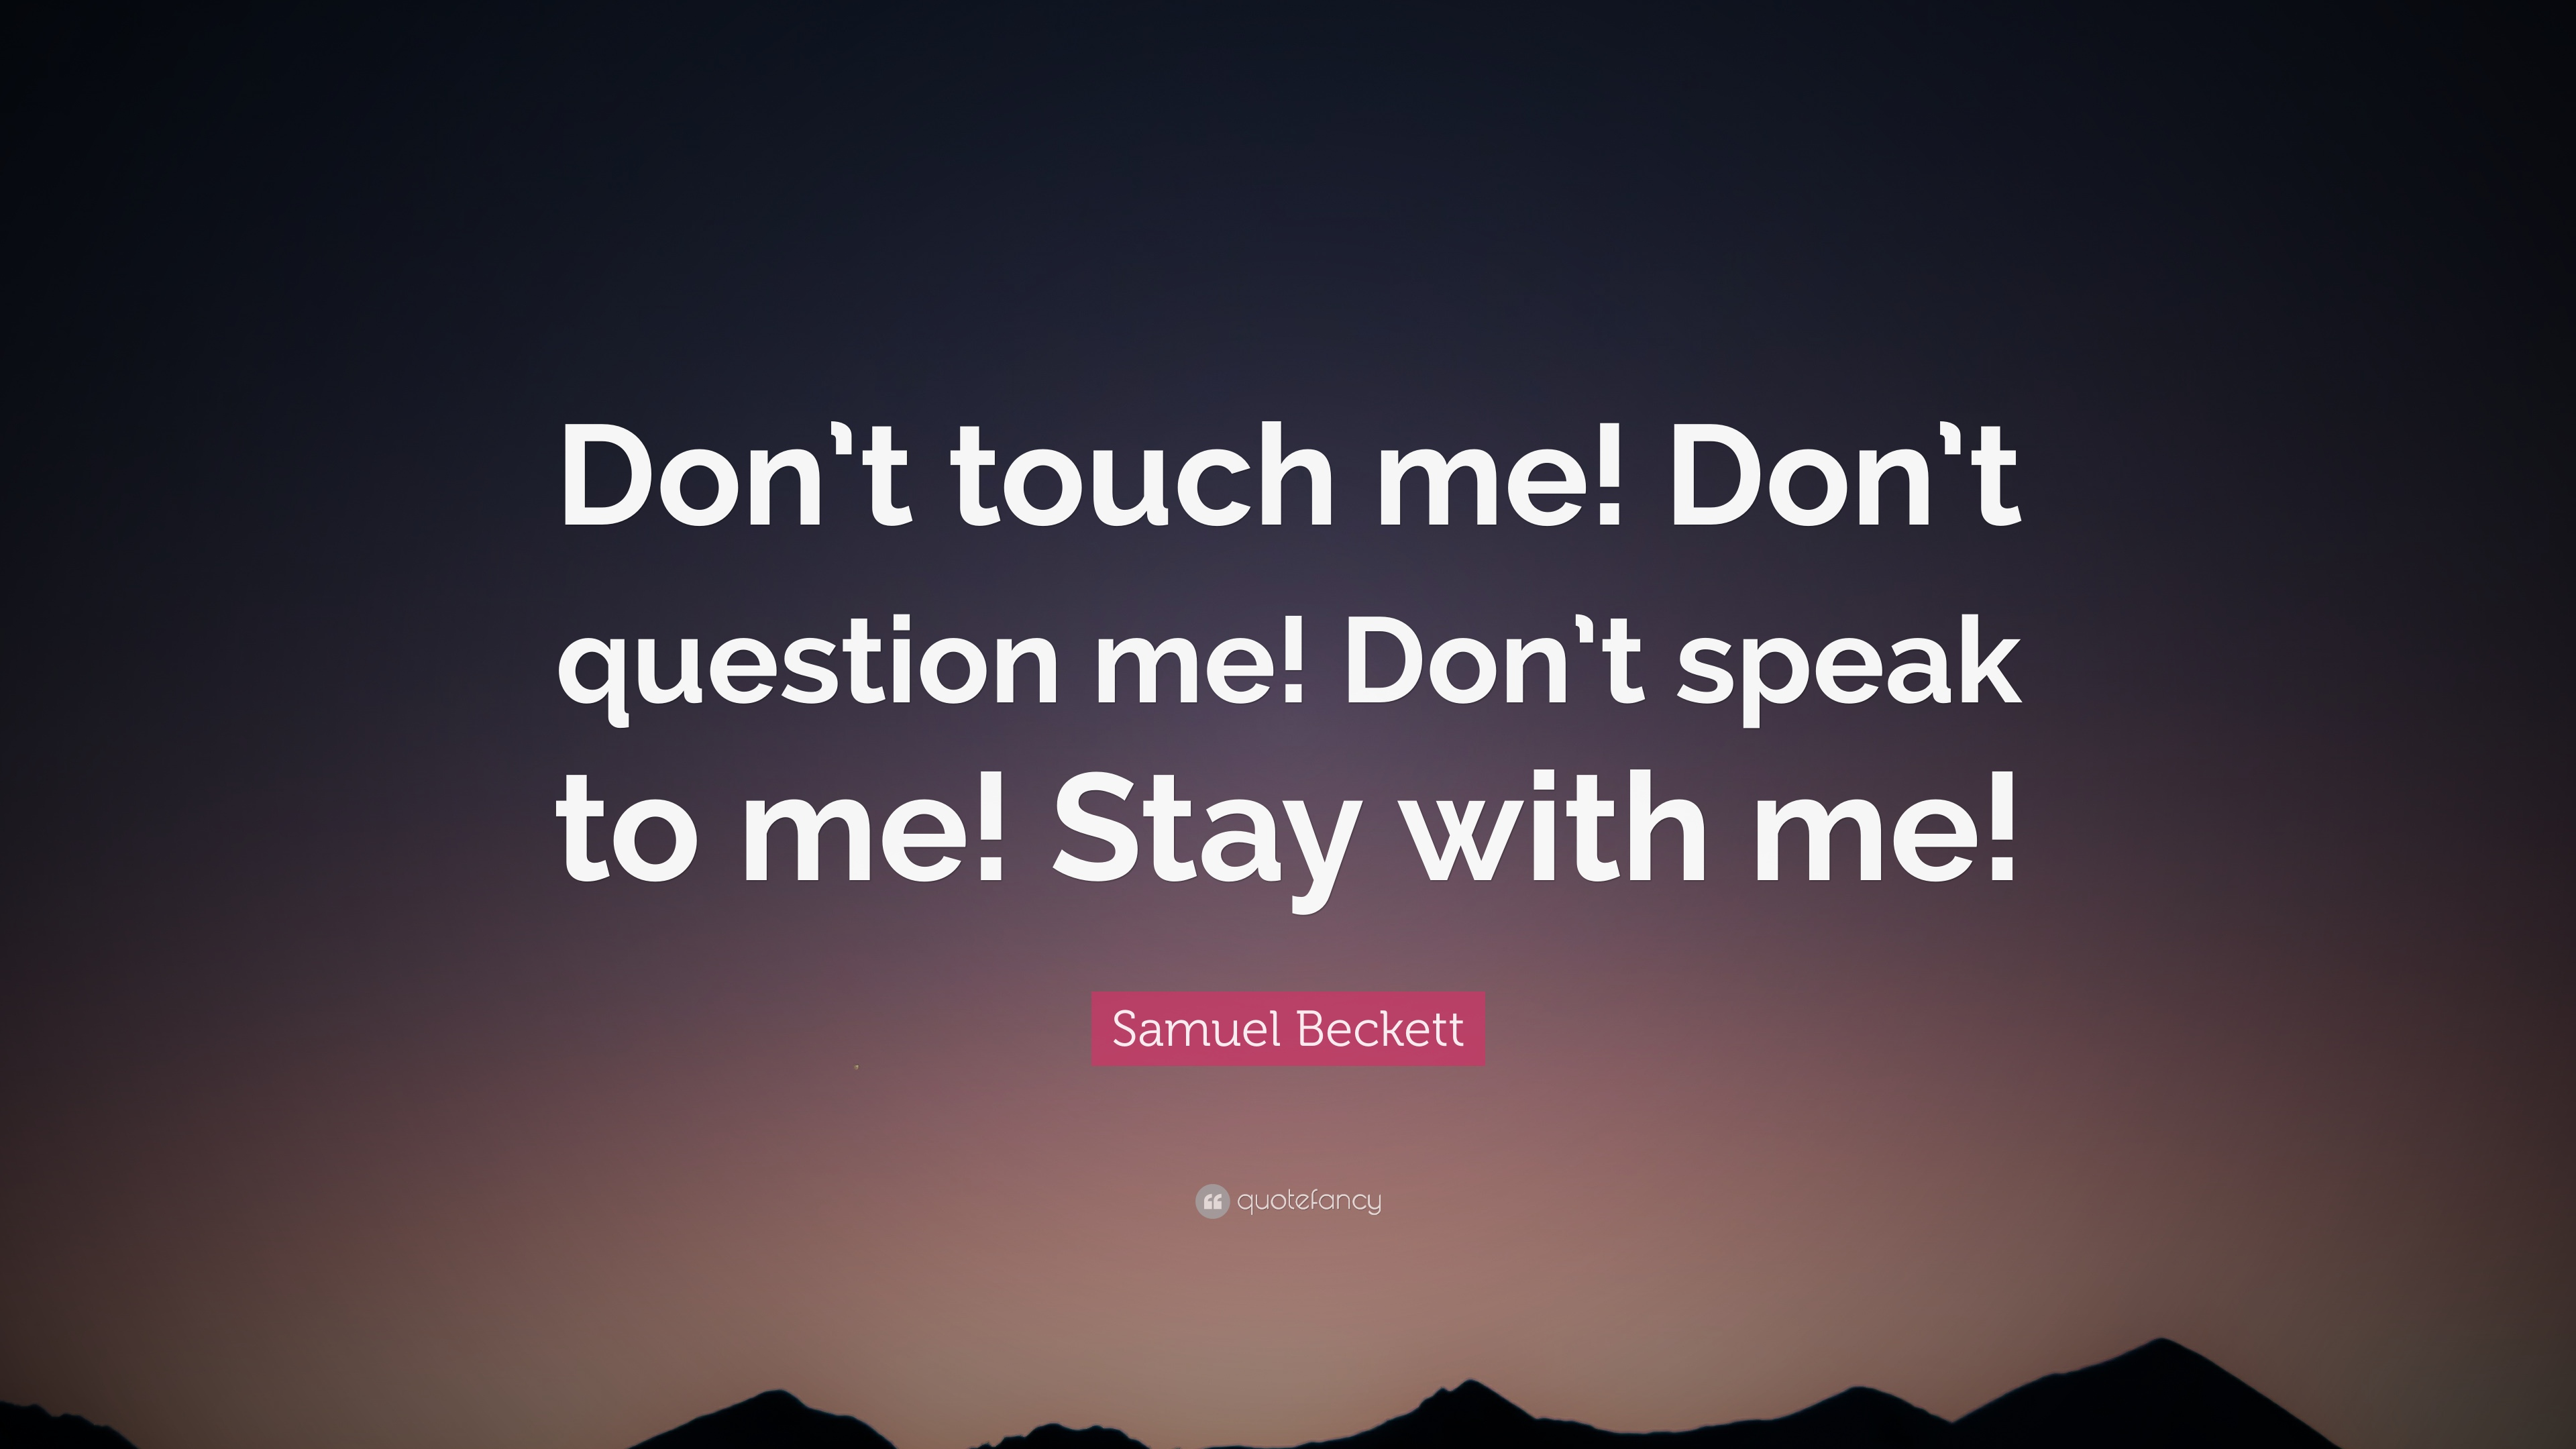 samuel beckett quote don t touch me don t question me don t samuel beckett quote don t touch me don t question me